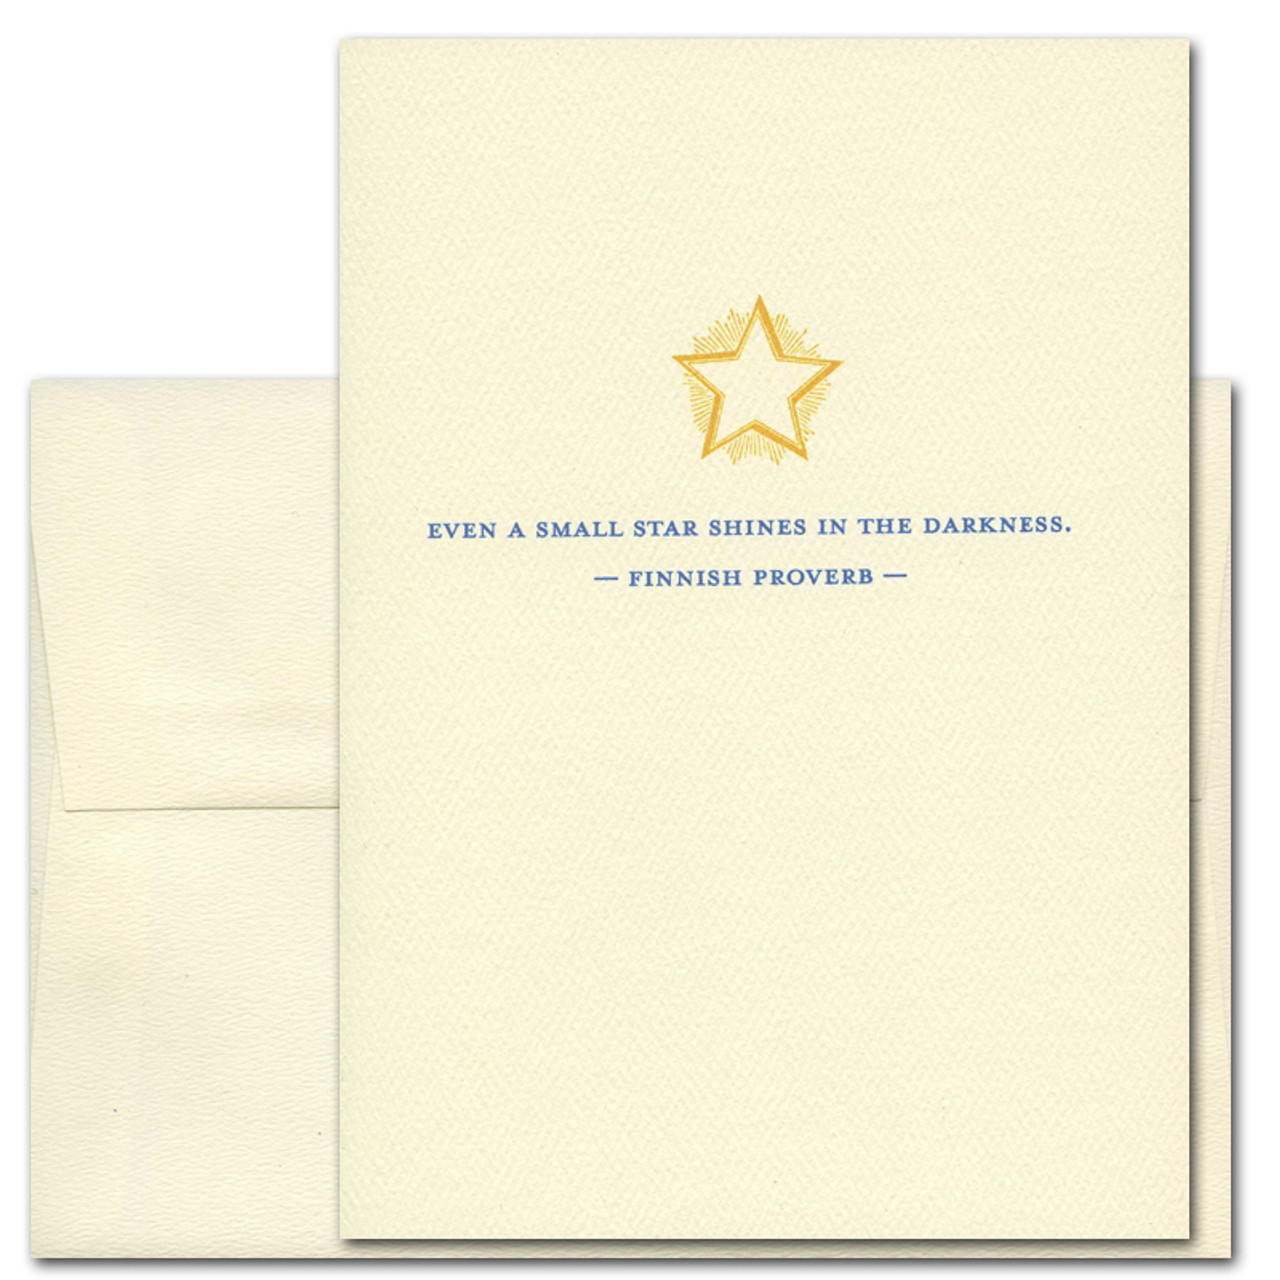 """Quotation Card """"Small Star: Finnish Proverb"""" Cover shows vintage style illustration of a golden star with the Finnish proverb: """"Even a small star shines in the darkness."""""""